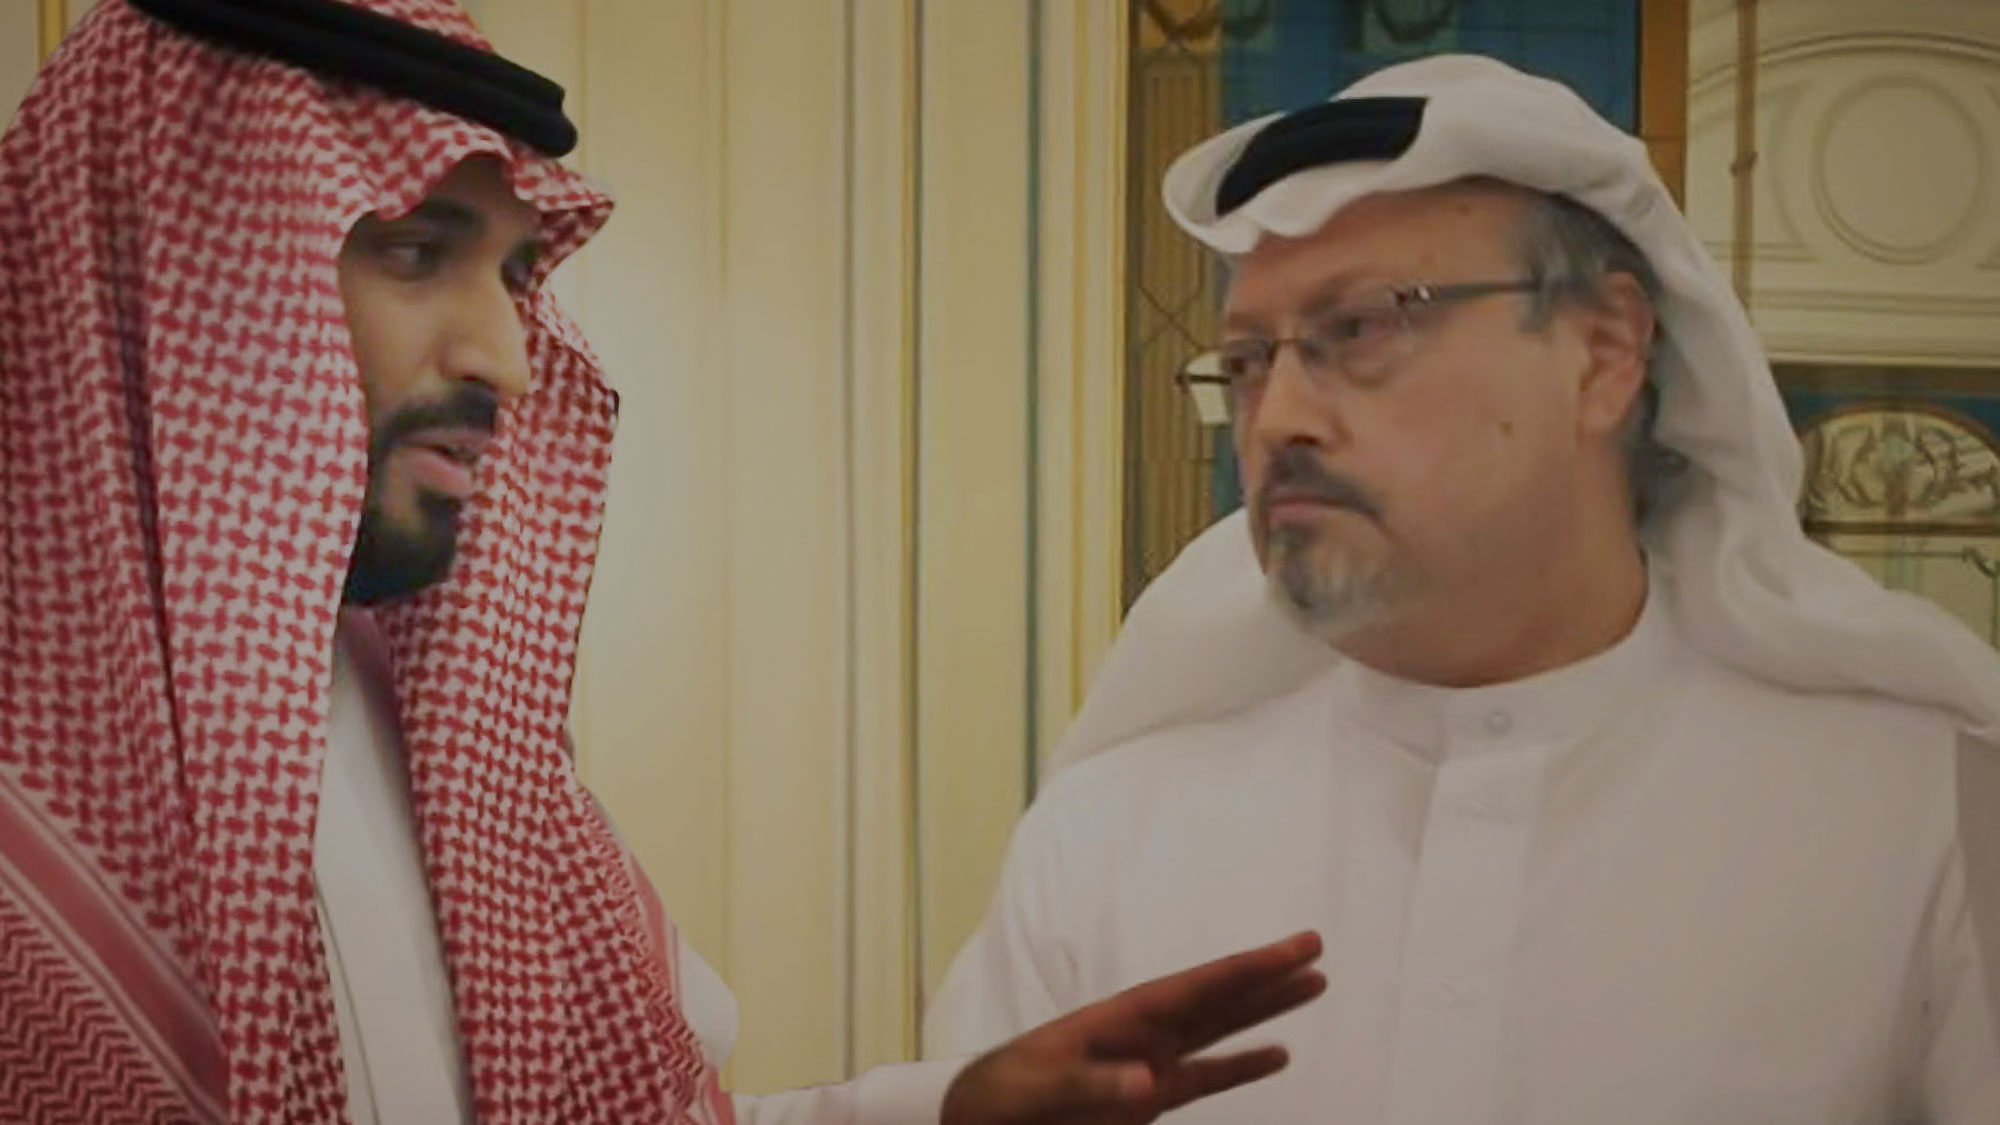 A still from Bryan Fogel's stirring new documentary about journalist Jamal Khashoggi